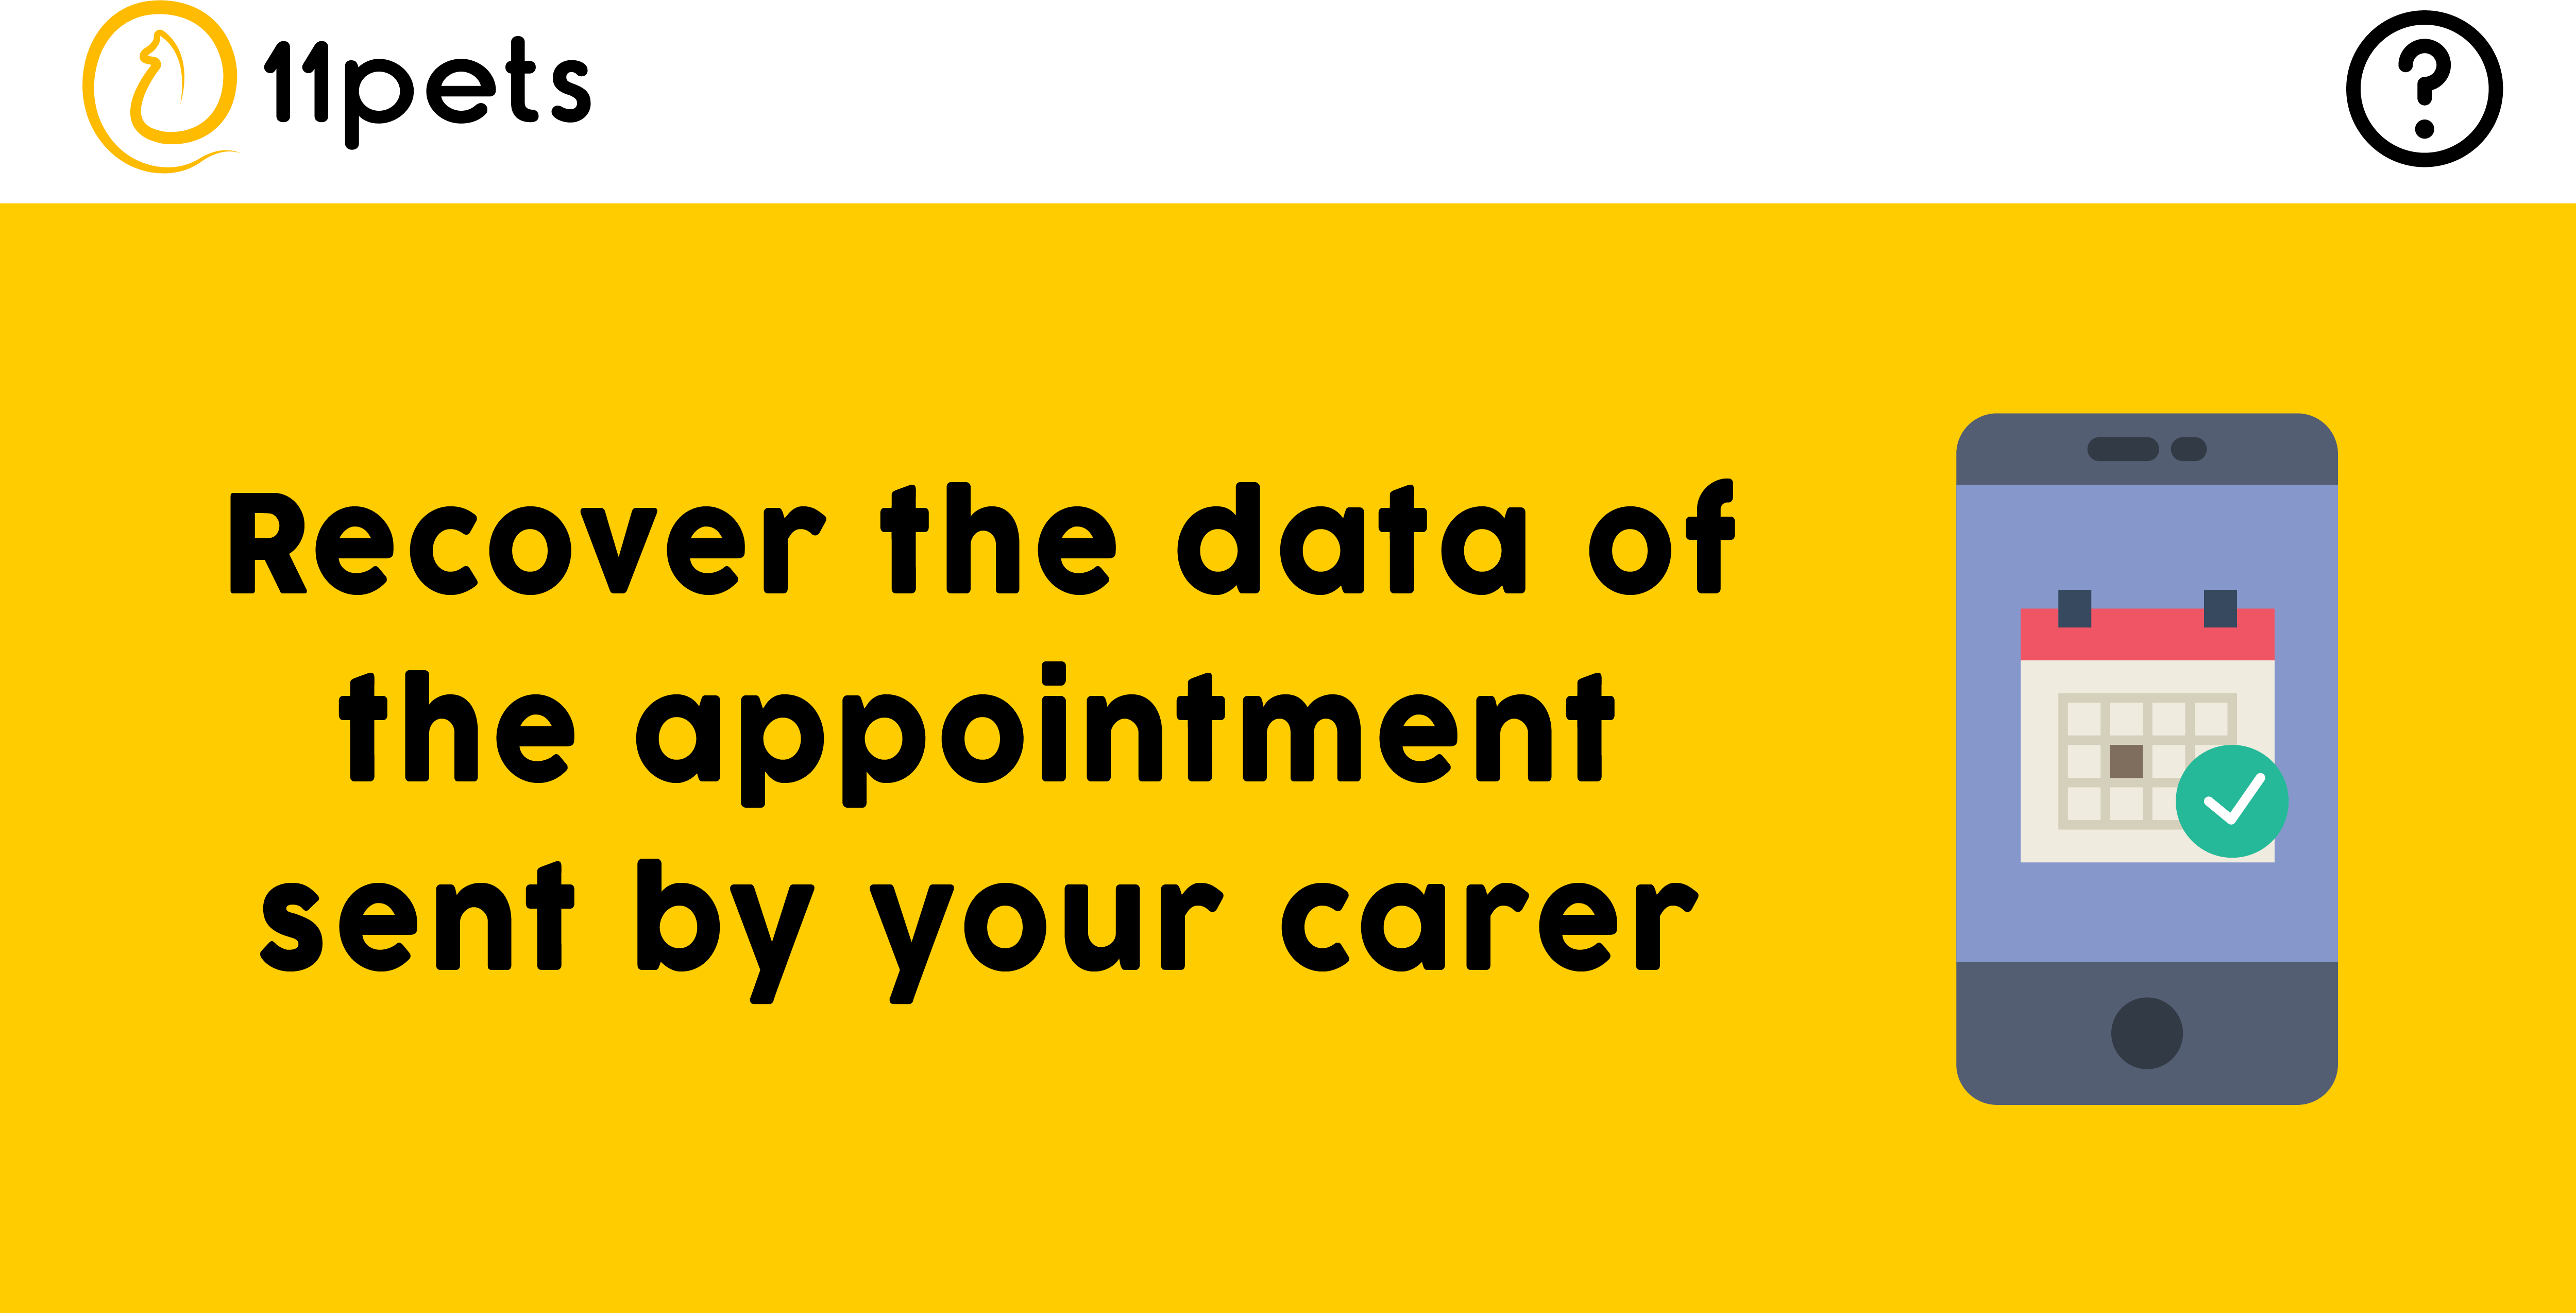 Recover the data of the appointment sent by your carer